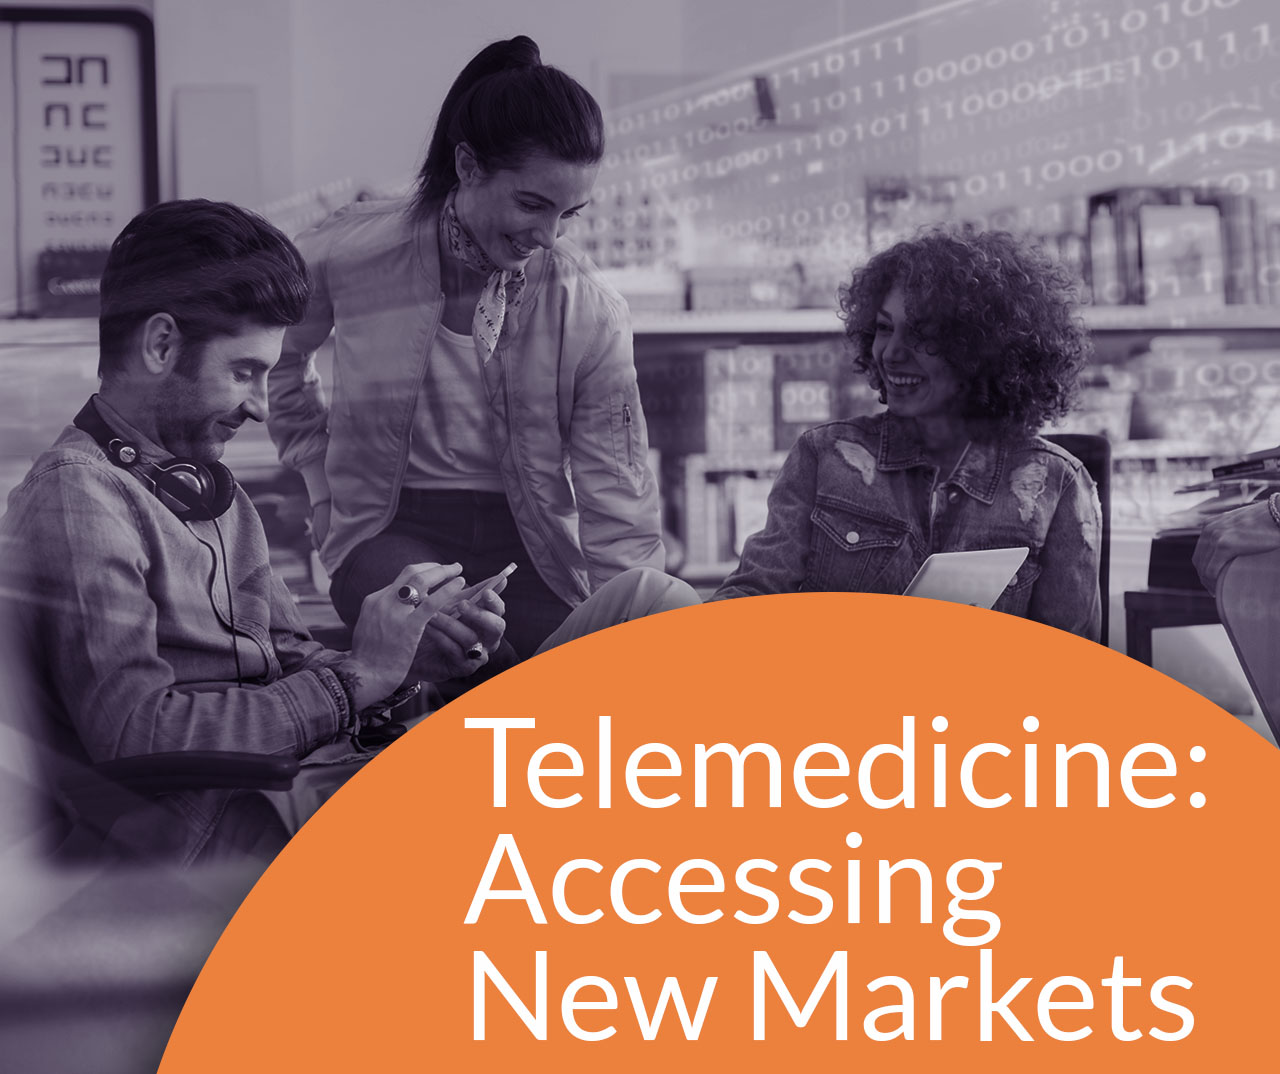 TELEMEDICINE: ACCESSING NEW MARKETS